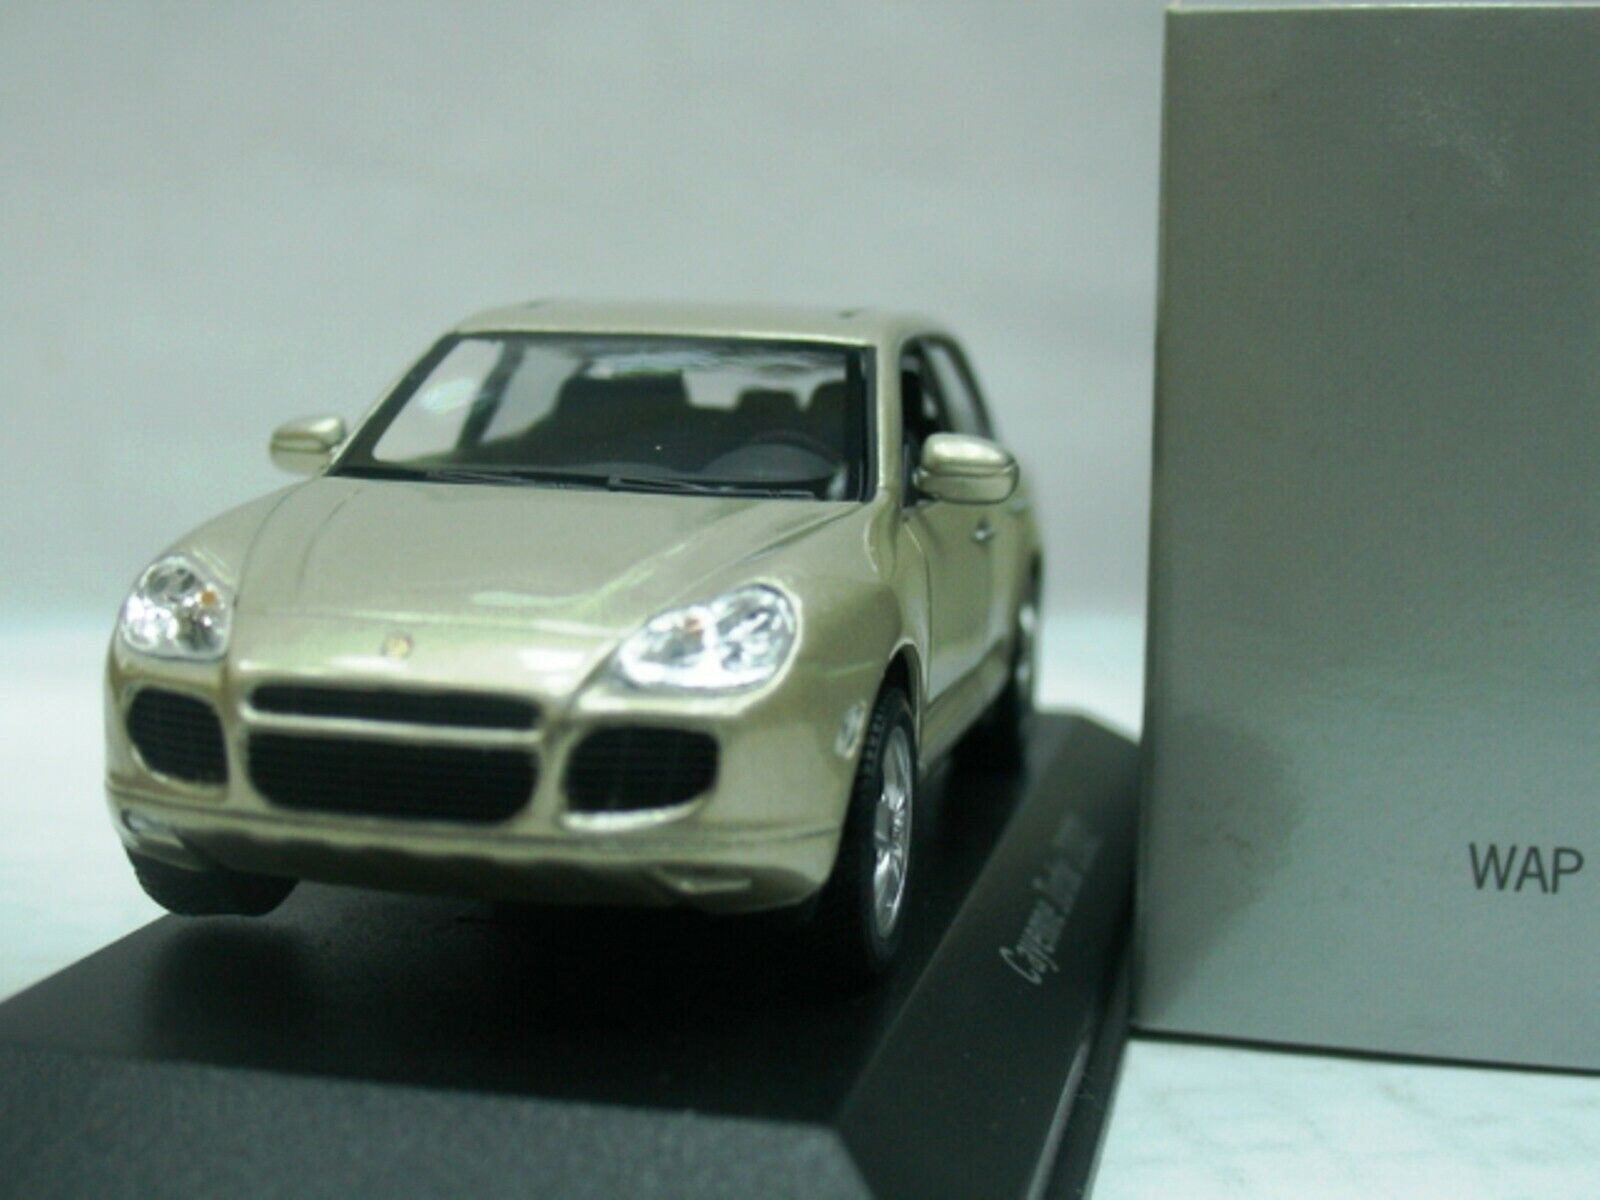 WOW EXTREMELY RARE Porsche Cayenne Turbo V8 450HP 2002 gold mt 1 43 Minichamps-S